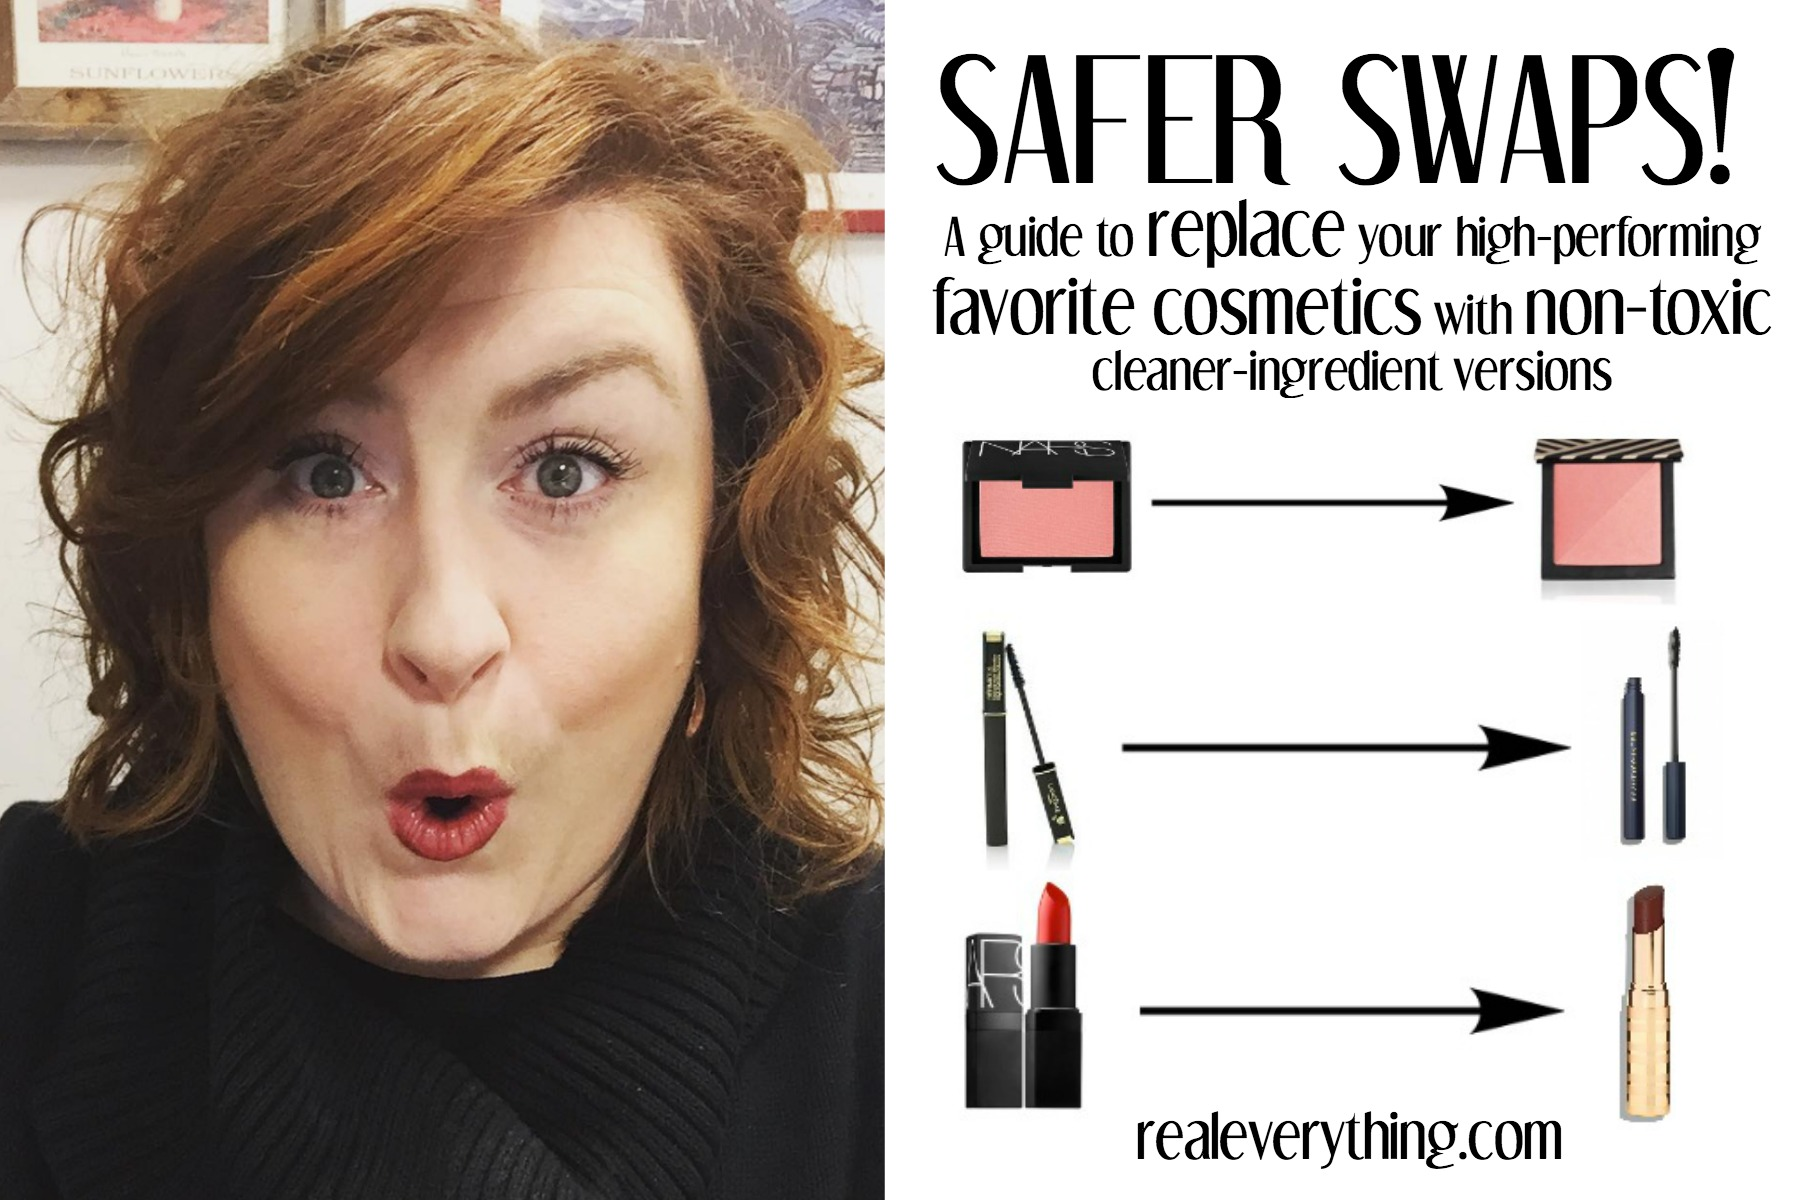 Safer Swaps BC Real Everything